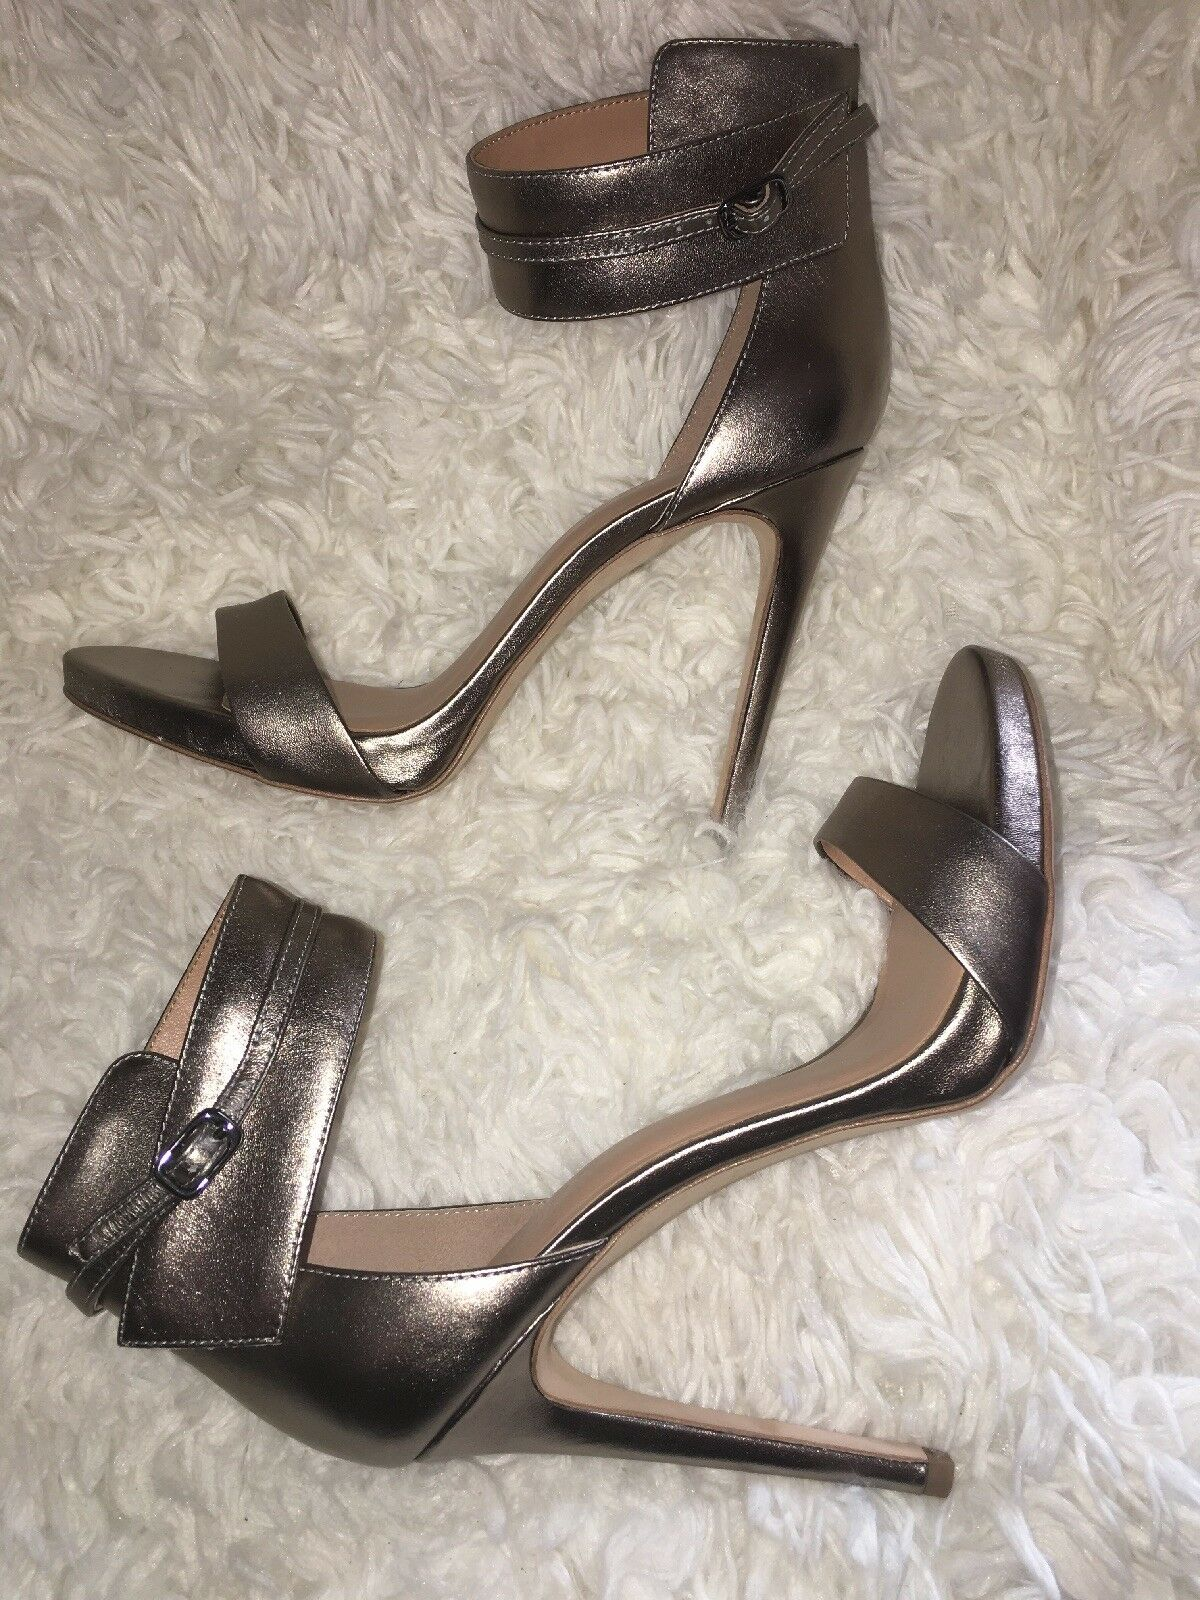 HALSTON HERITAGE Ellen Platform Stiletto Sandals Metallic Leather Size 9